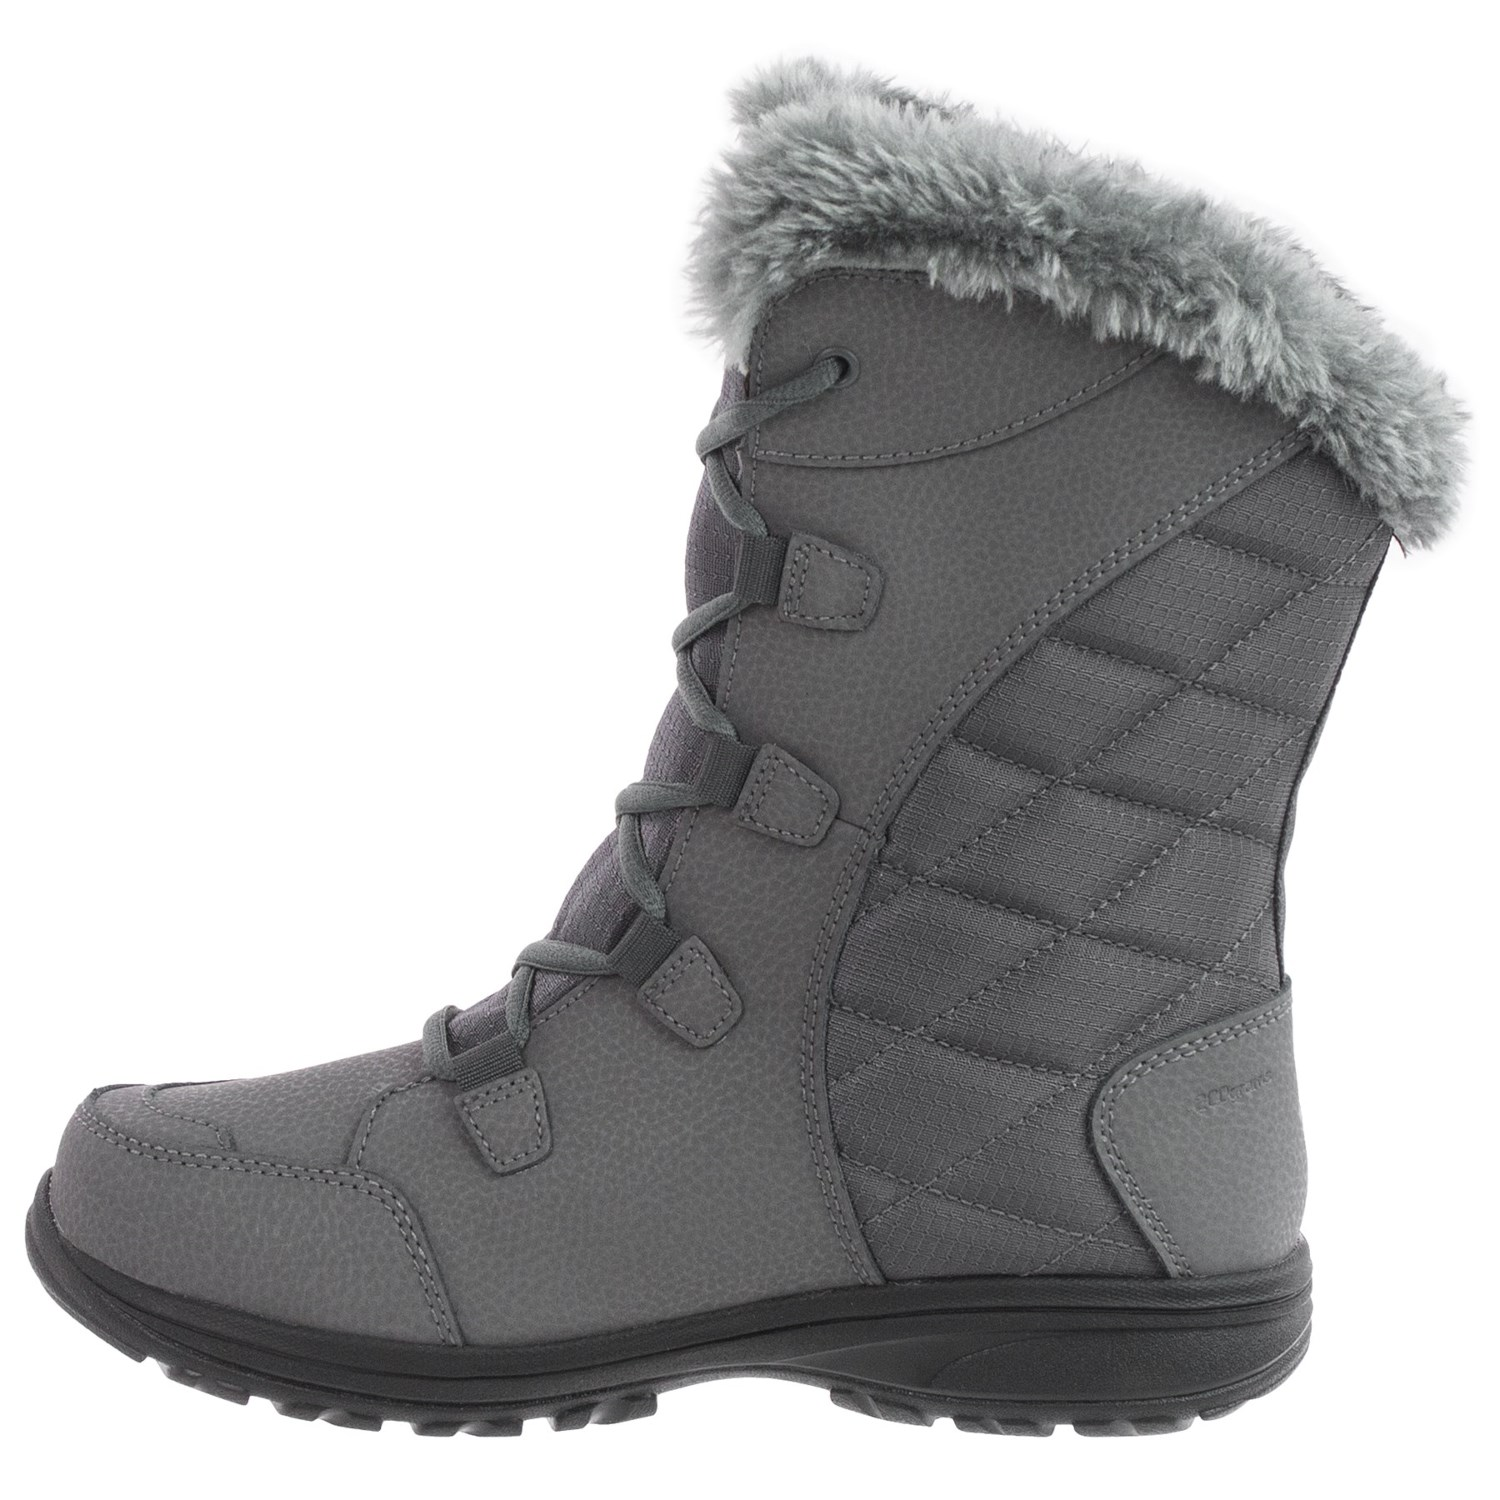 Snow Boots Clearance - Cr Boot